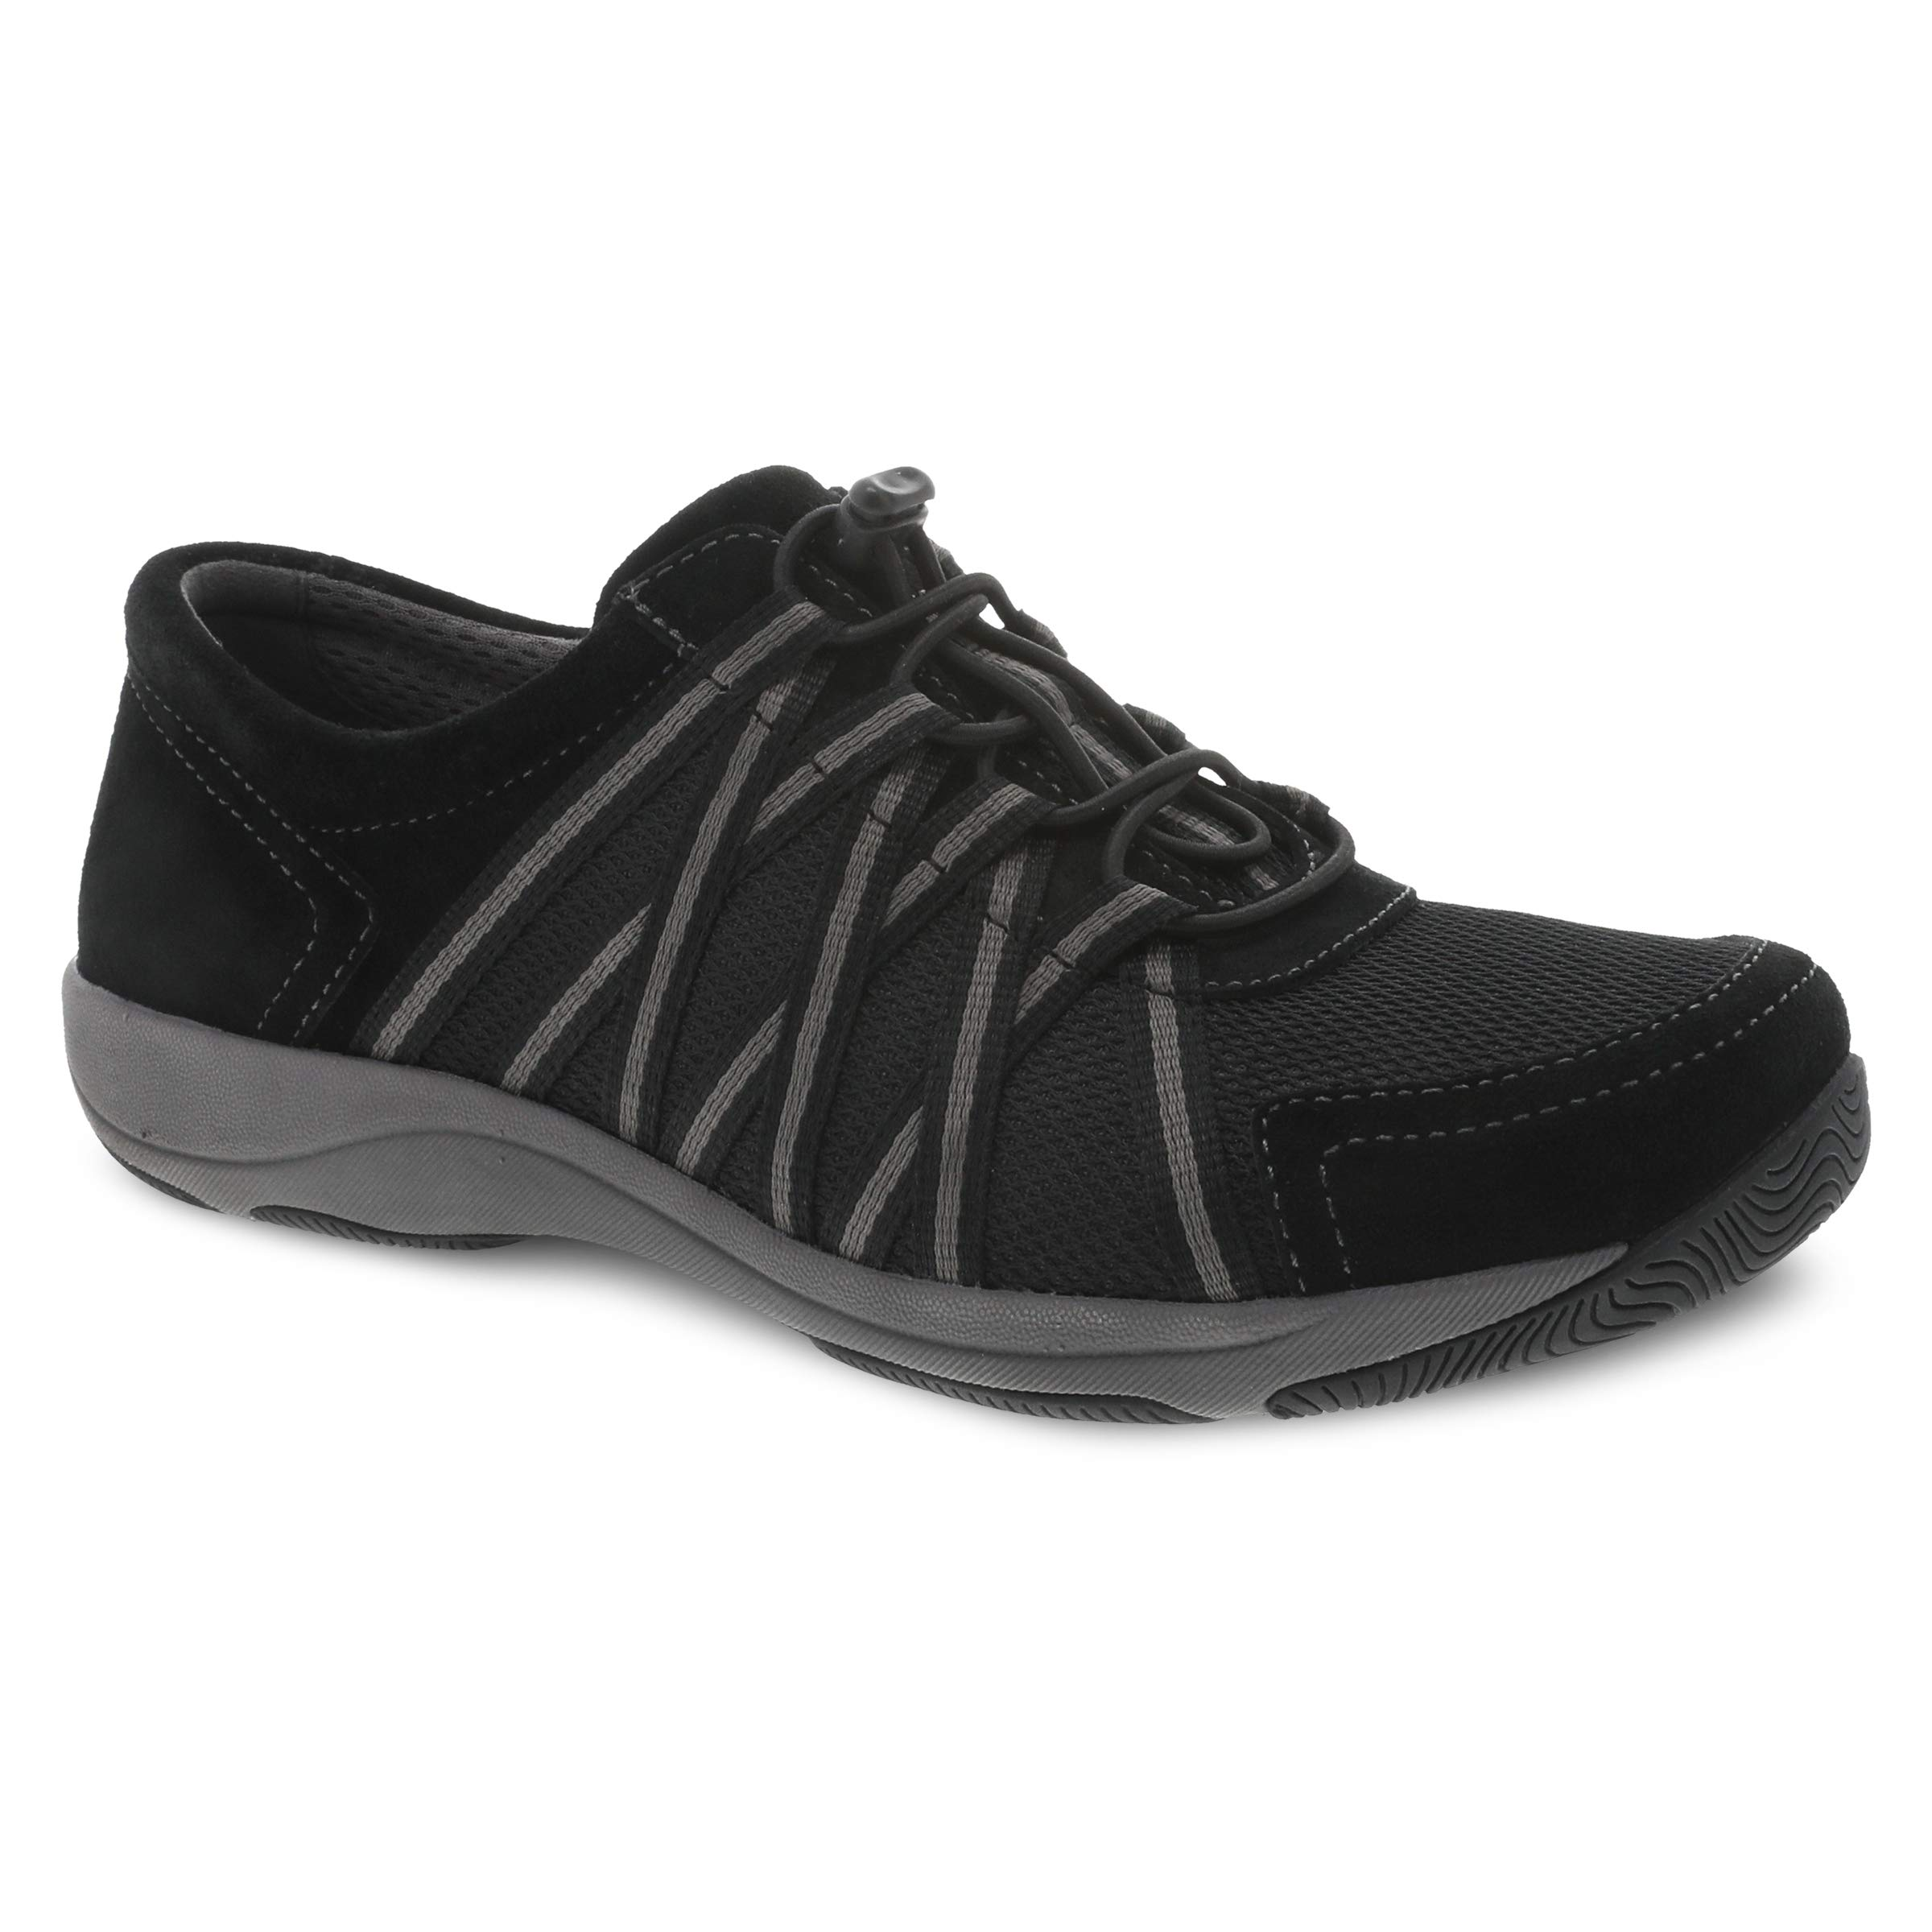 Dansko Womens Honor Sneaker Black